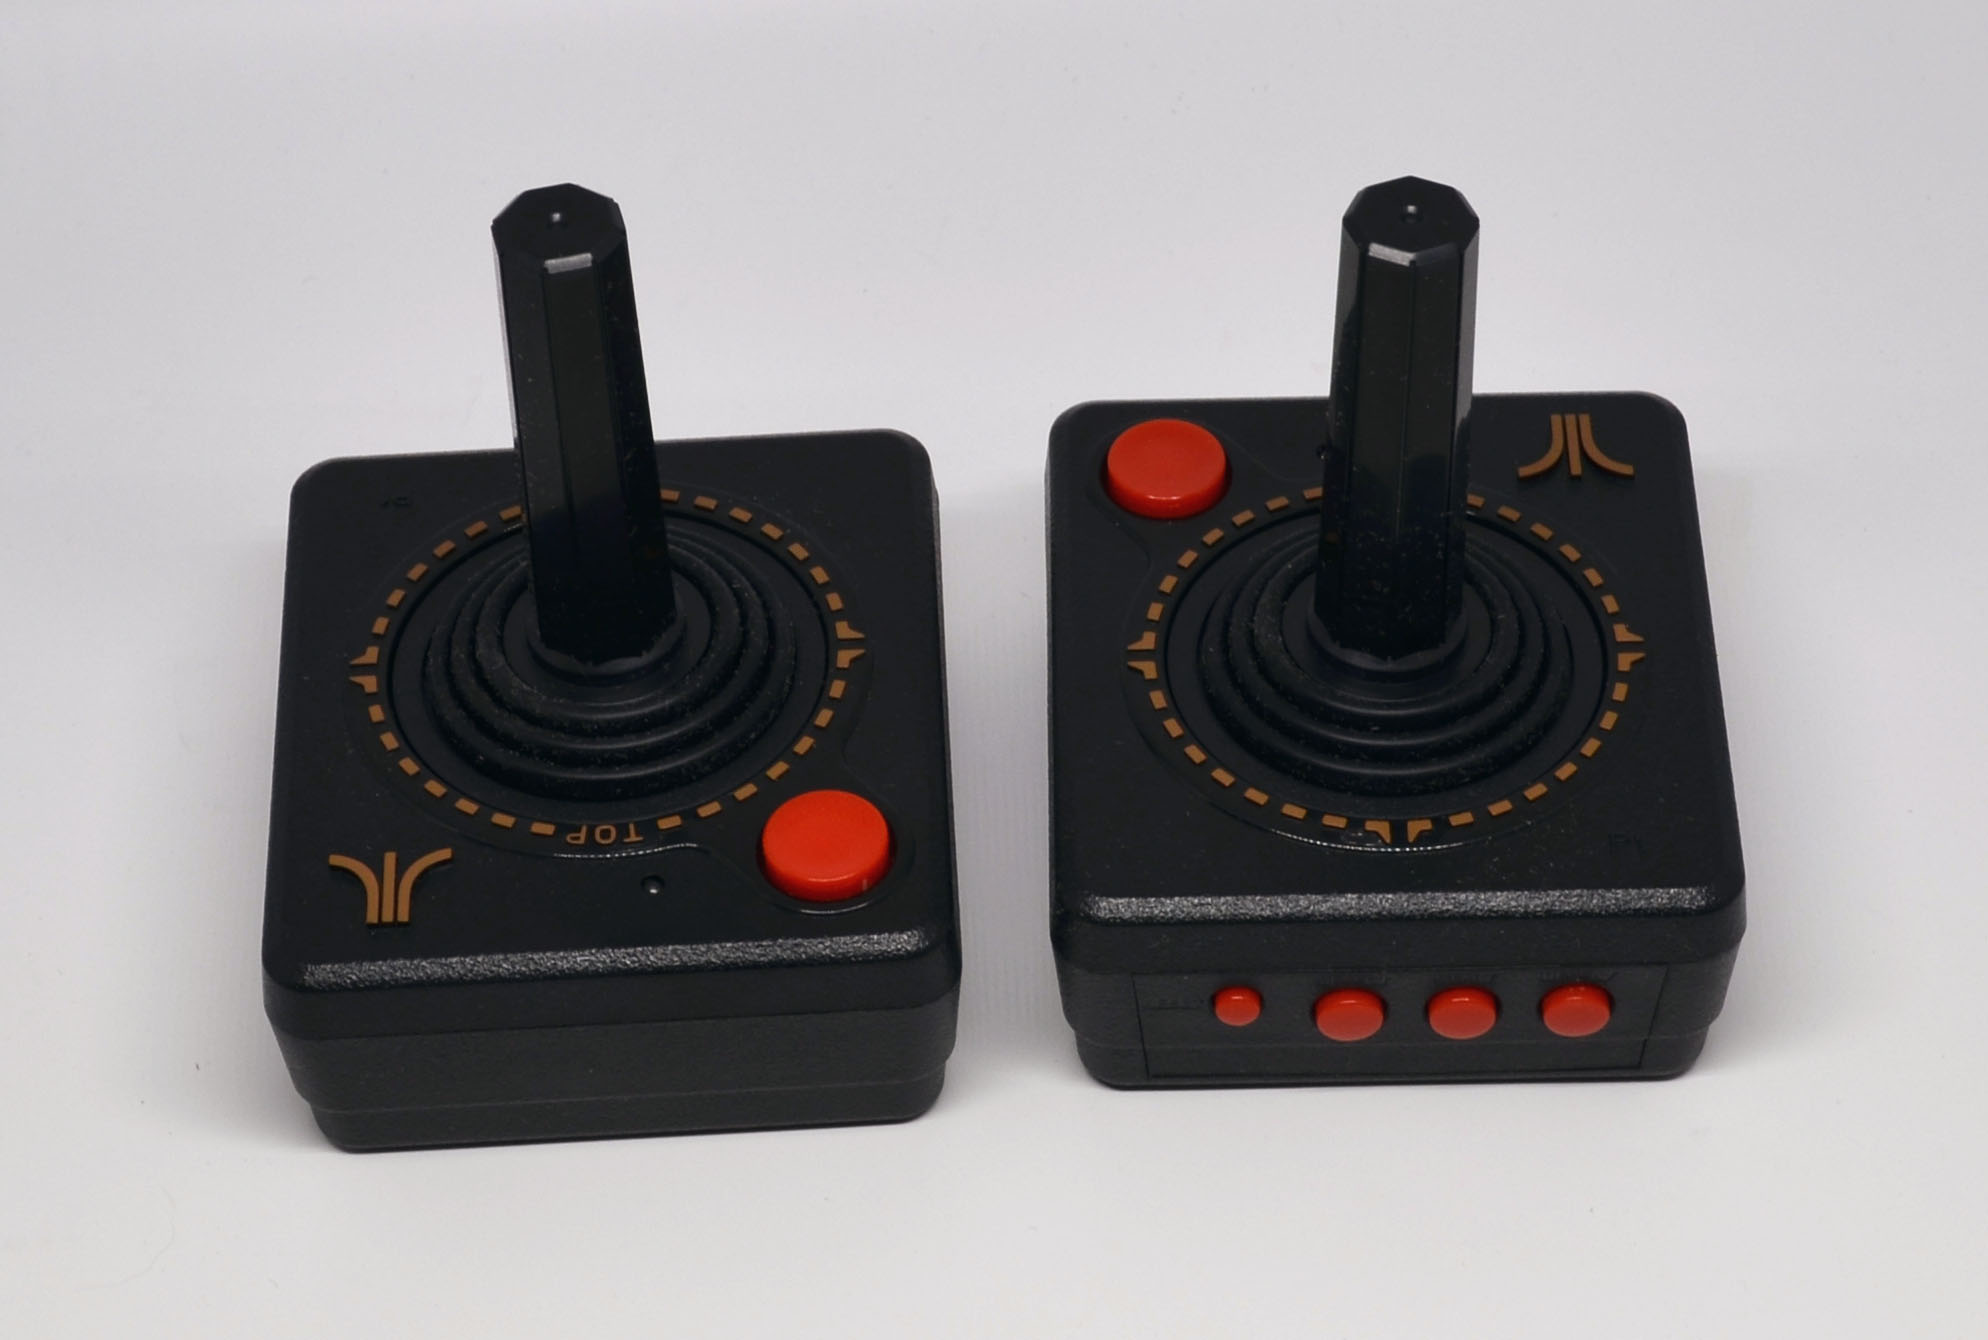 The joysticks.